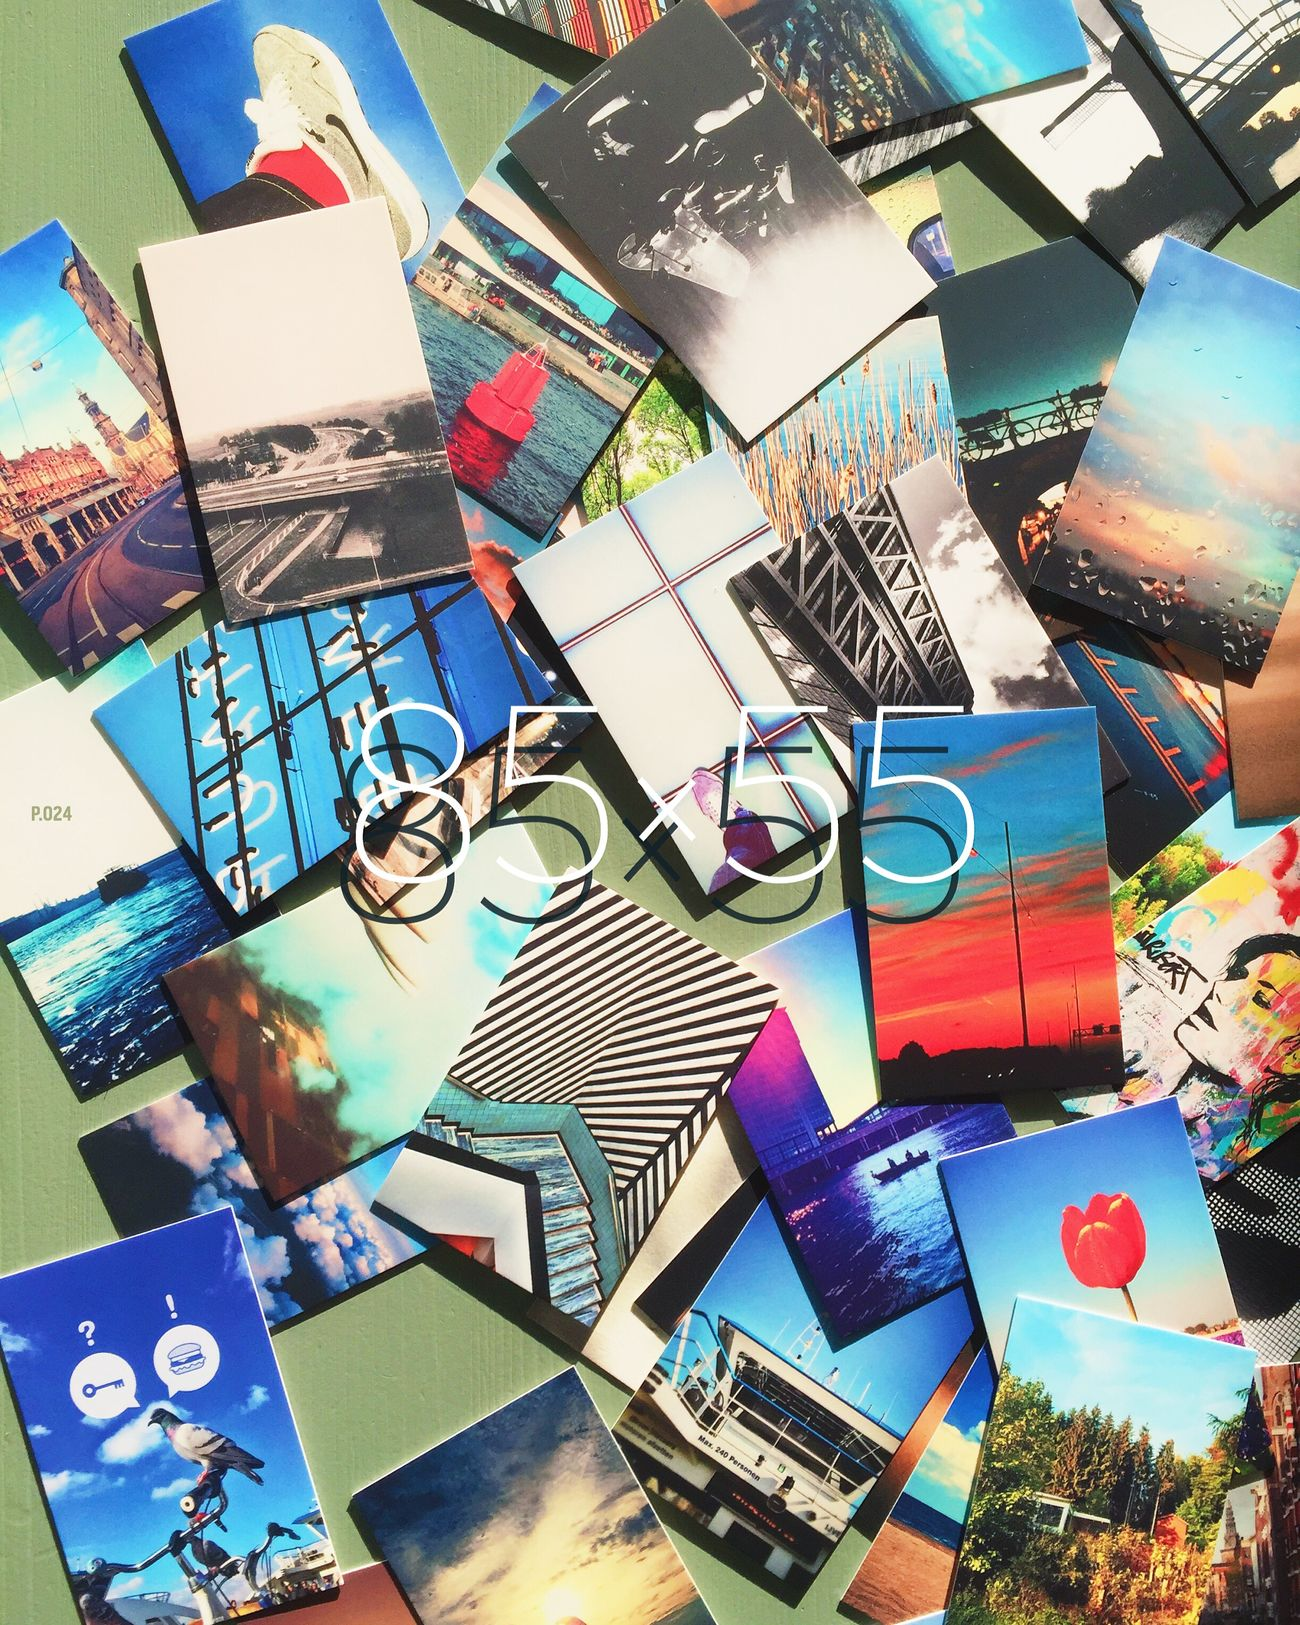 85×55 P.024 Onephotoaday 365project Business Card Printed 85x55 Getting Creative Colorful Introducing Myself Hello World Sunlight And Shadow